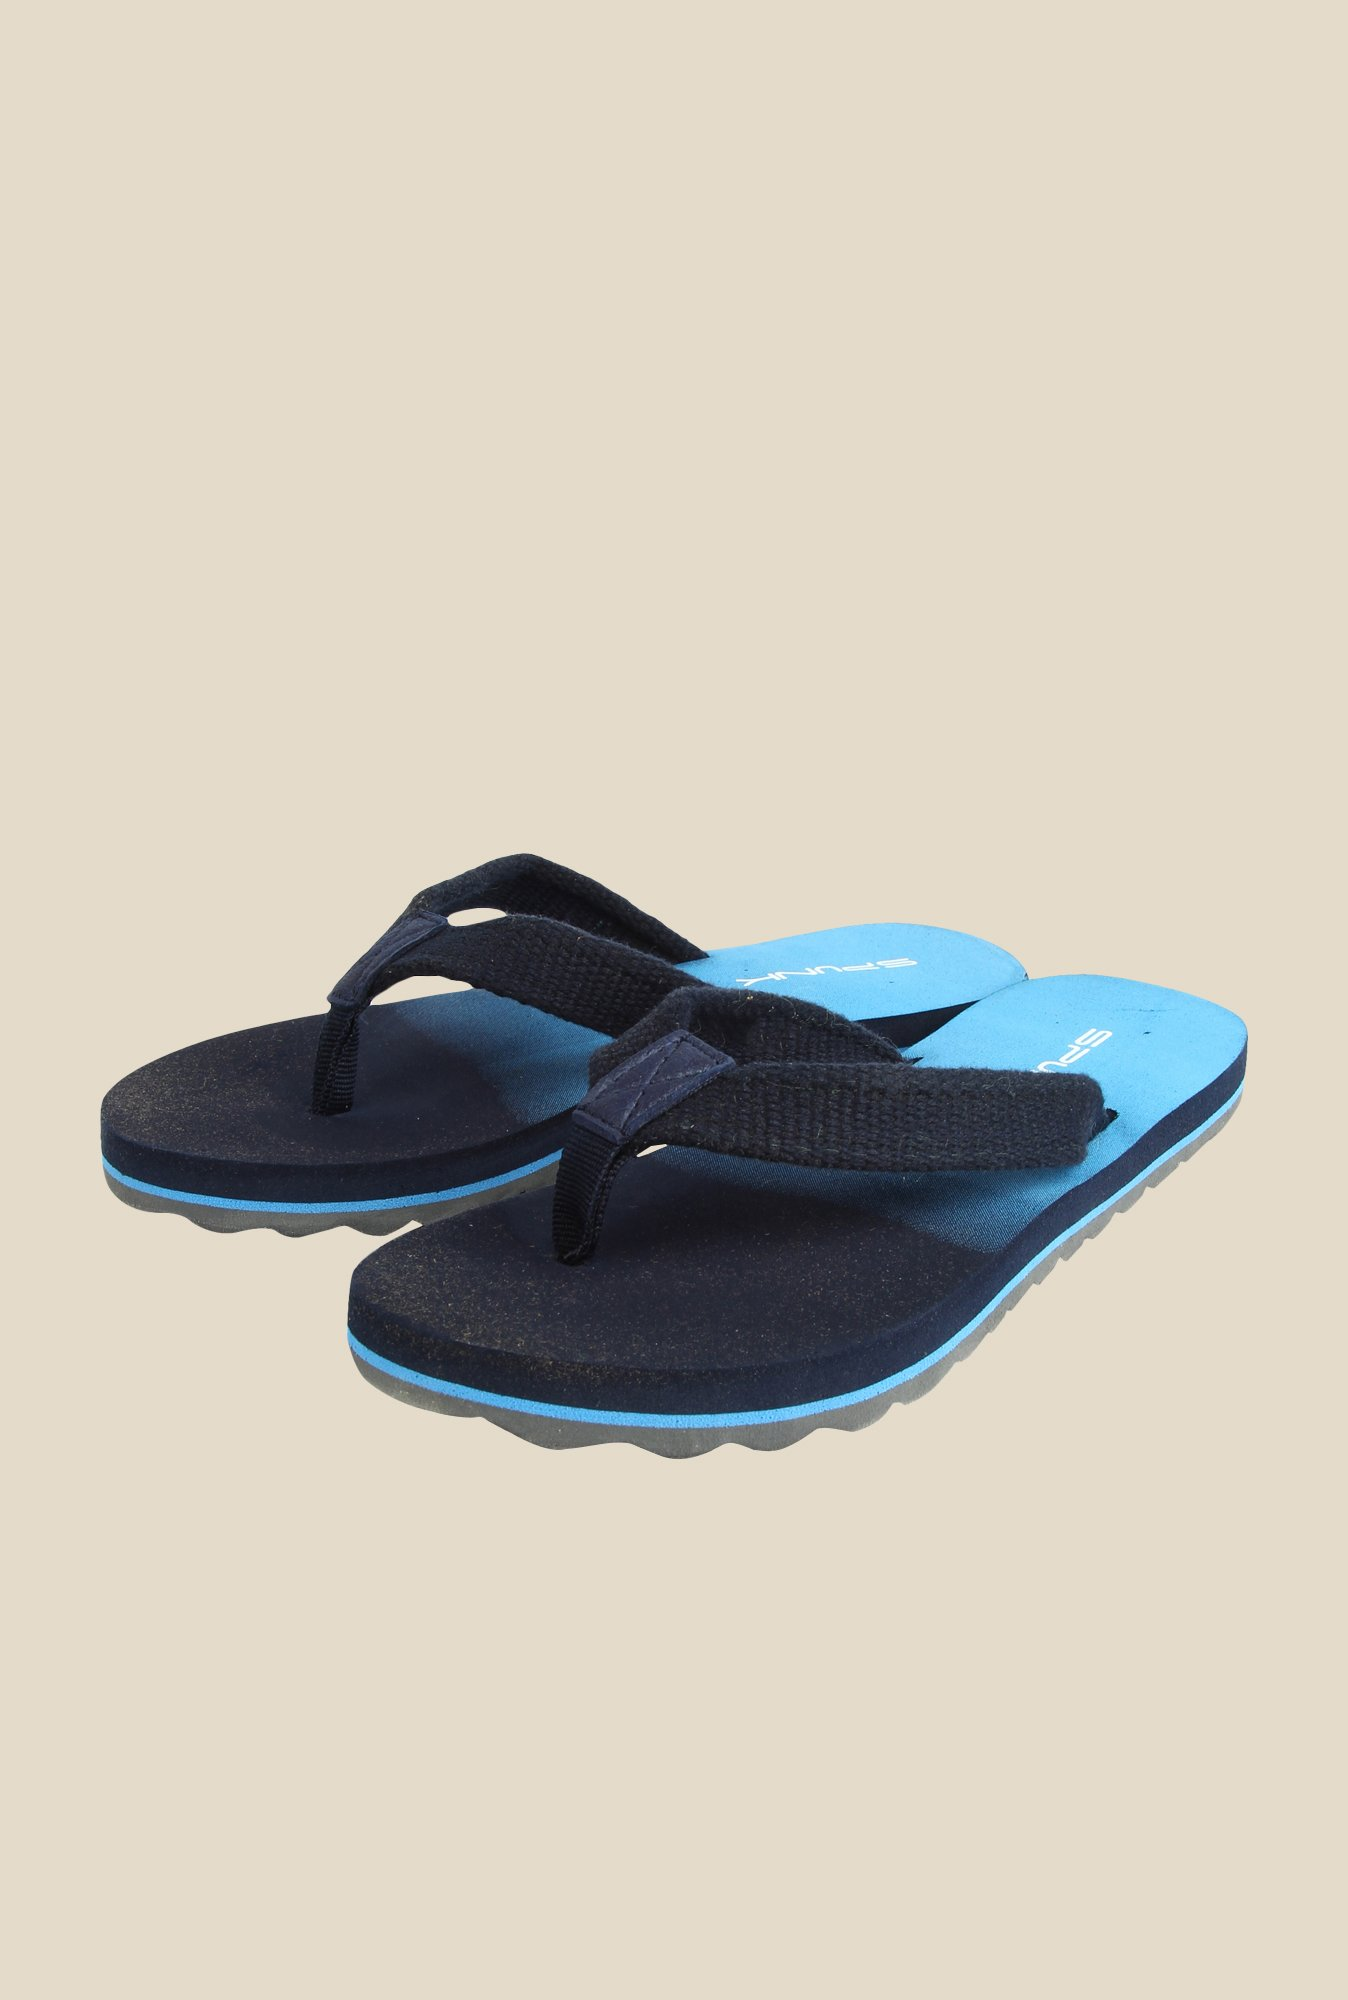 Spunk Sunshine Twilight Blue Flip Flops